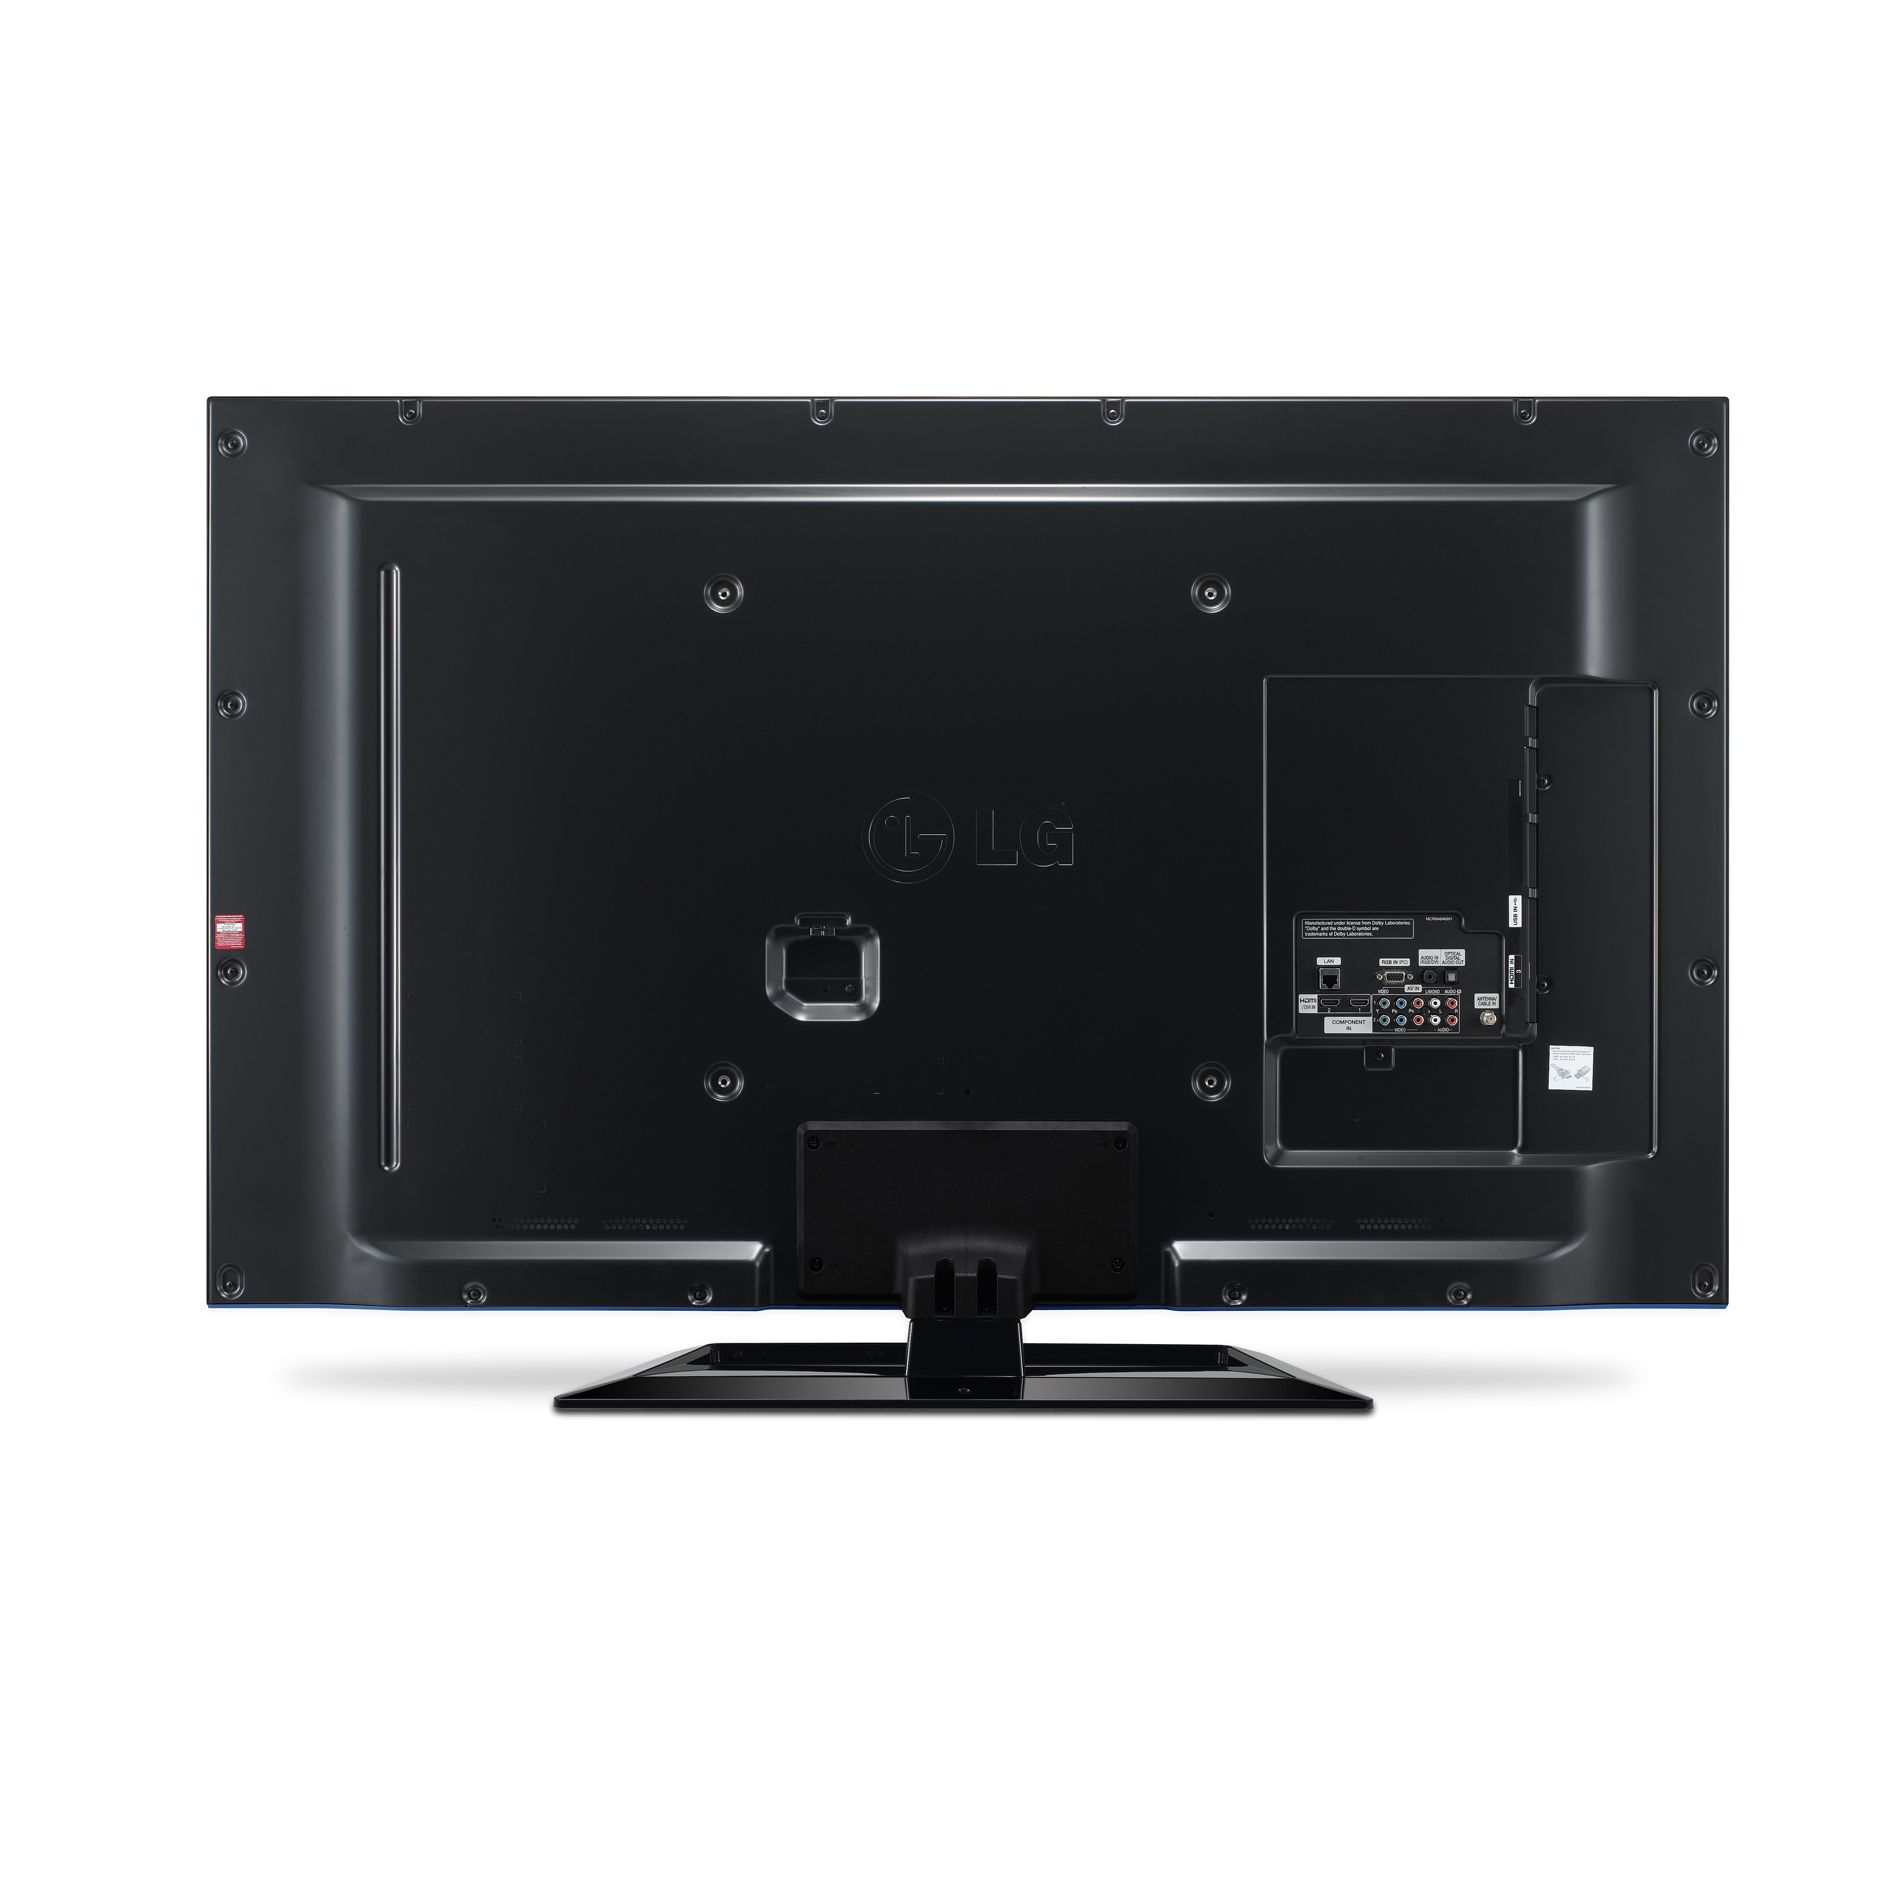 "LG 55"" LED Cinema 3D HDTV 55LM4600"